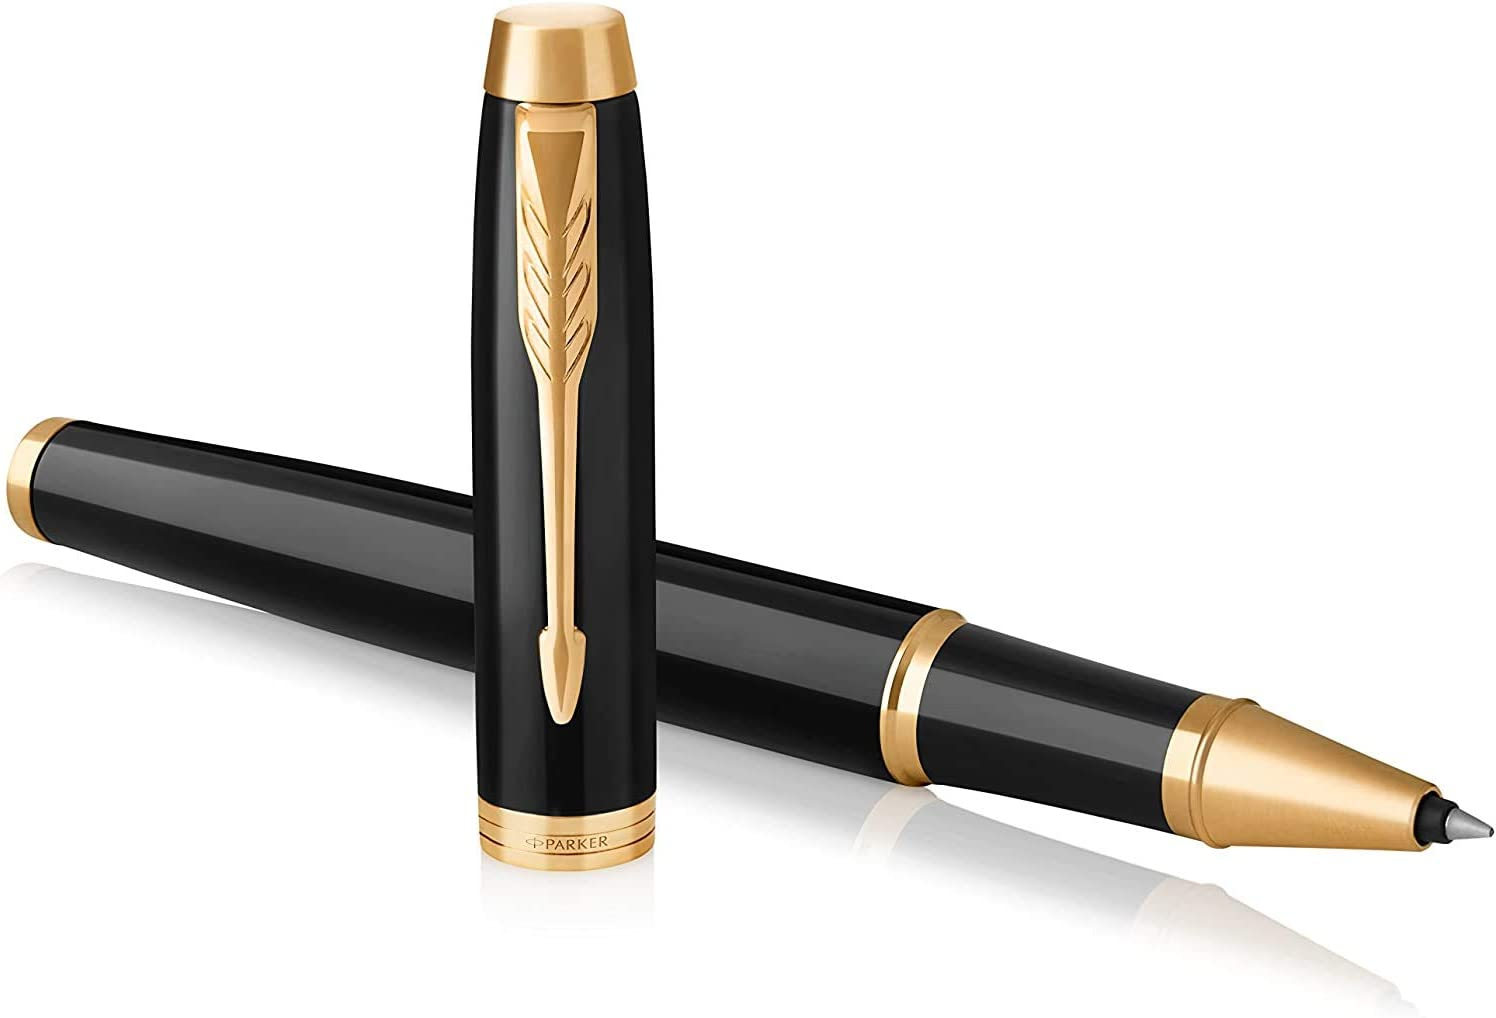 PARKER IM Rollerball Pen, Black Lacquer Gold Trim with Fine Point Black Ink Refill, Gift Box (1931659)